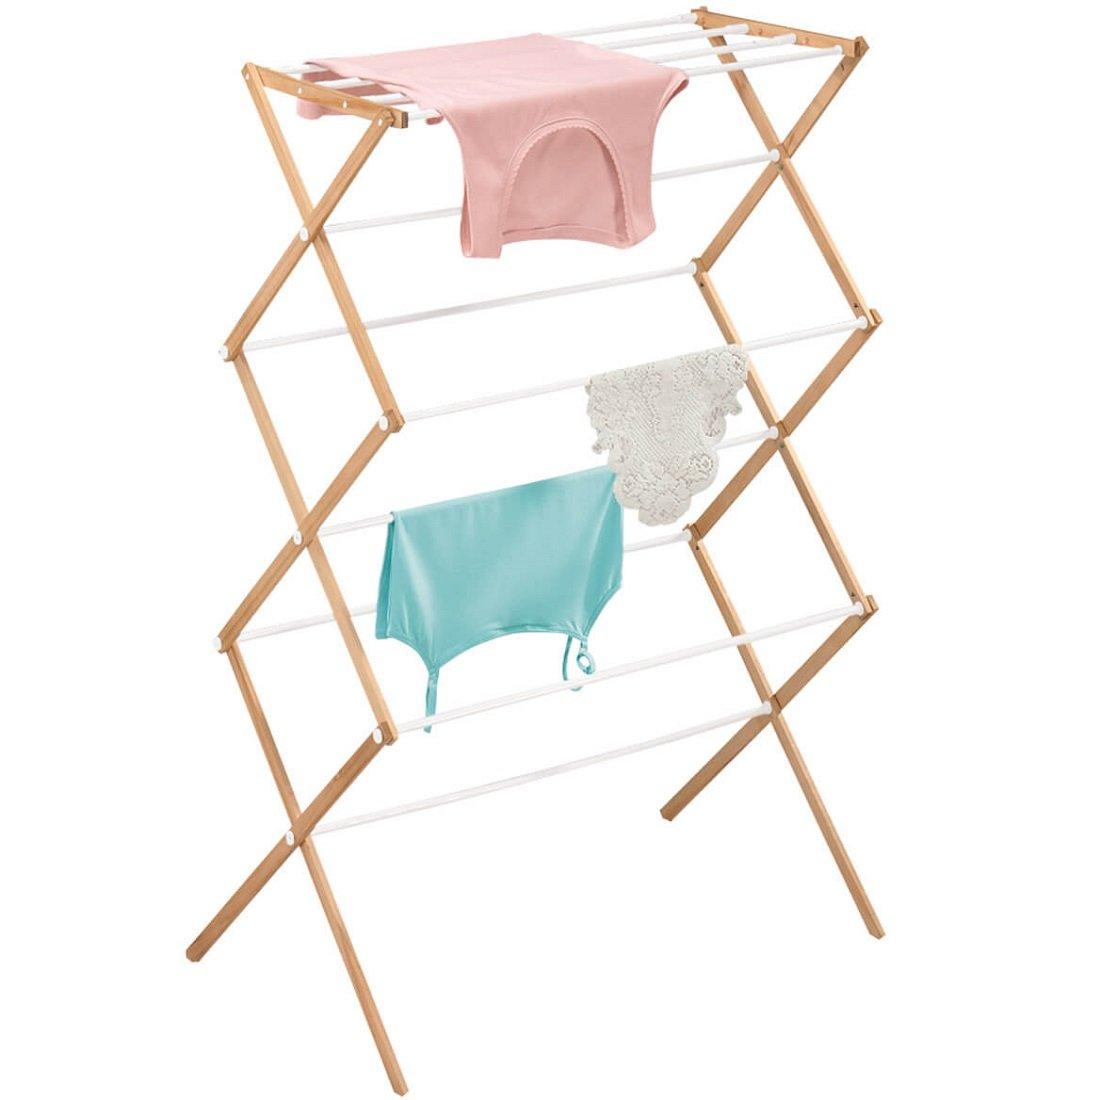 MS Home Easy Assembly Folding Garments Laundry Rack - Wood and Plastic, Rust-Free, Lightweight - 29.25'' L x 13'' W x 43.25'' H by MS Home